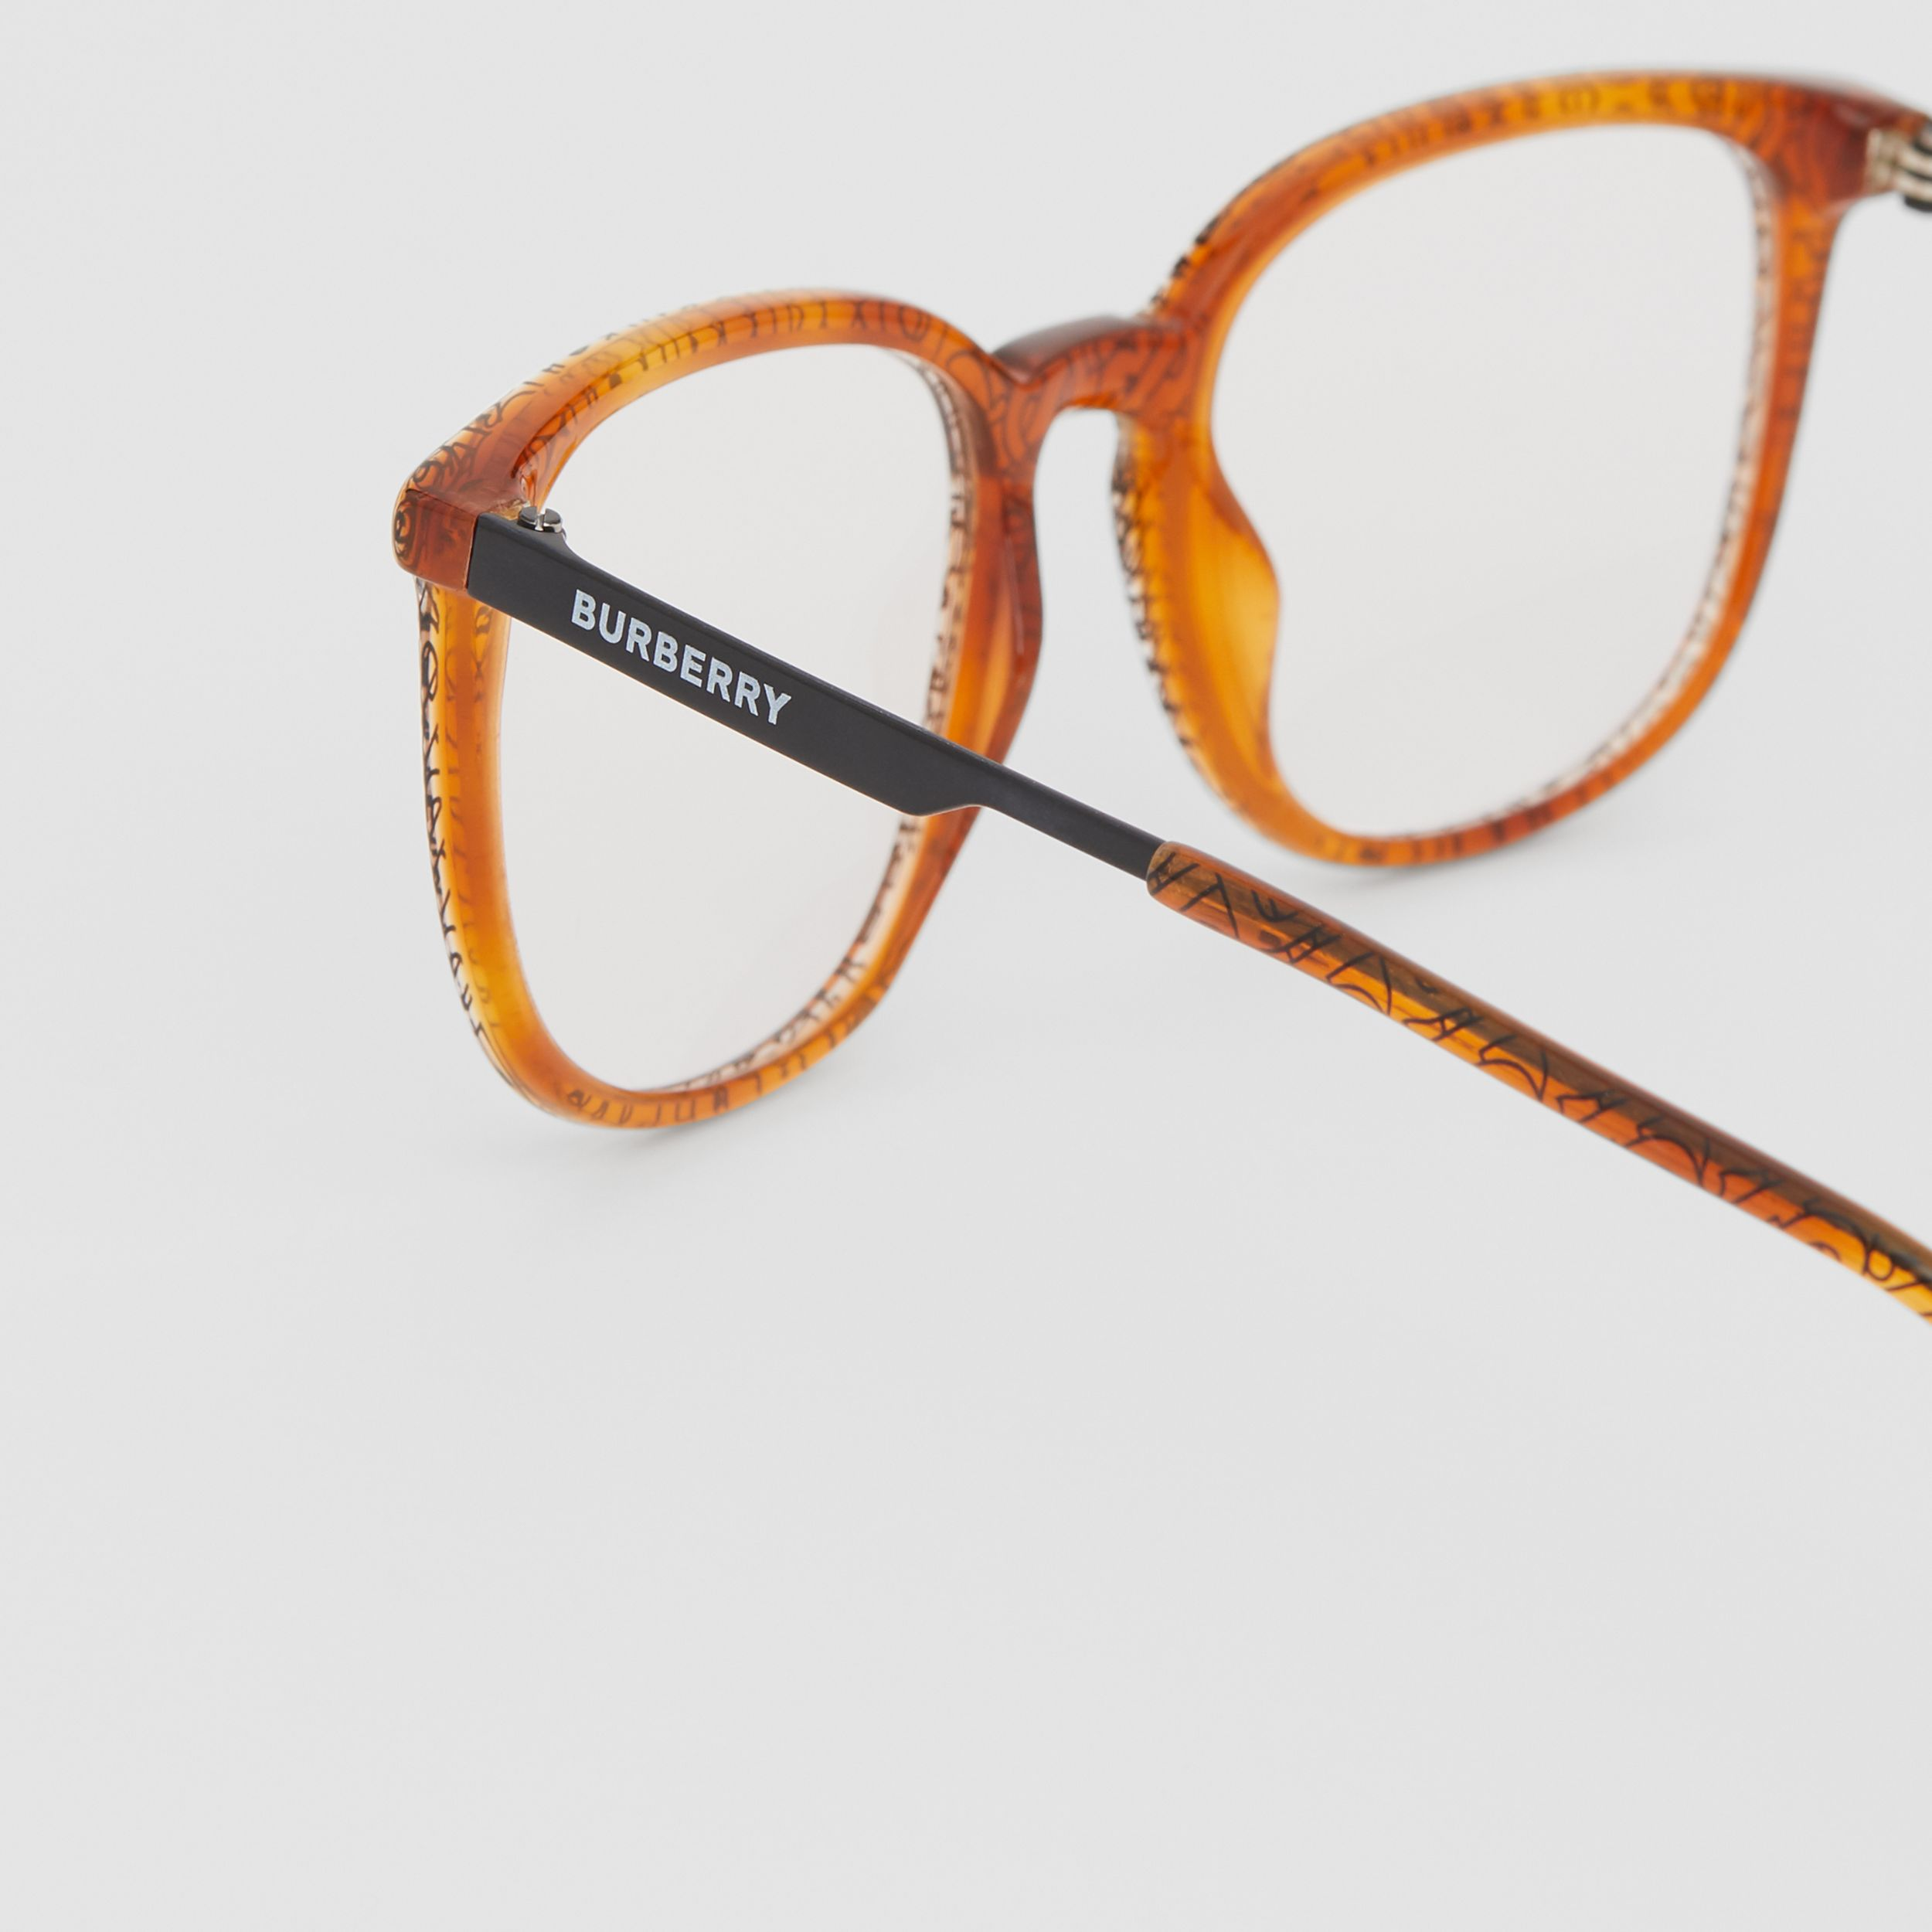 Monogram Print Square Optical Frames in Tortoiseshell Amber | Burberry - 2